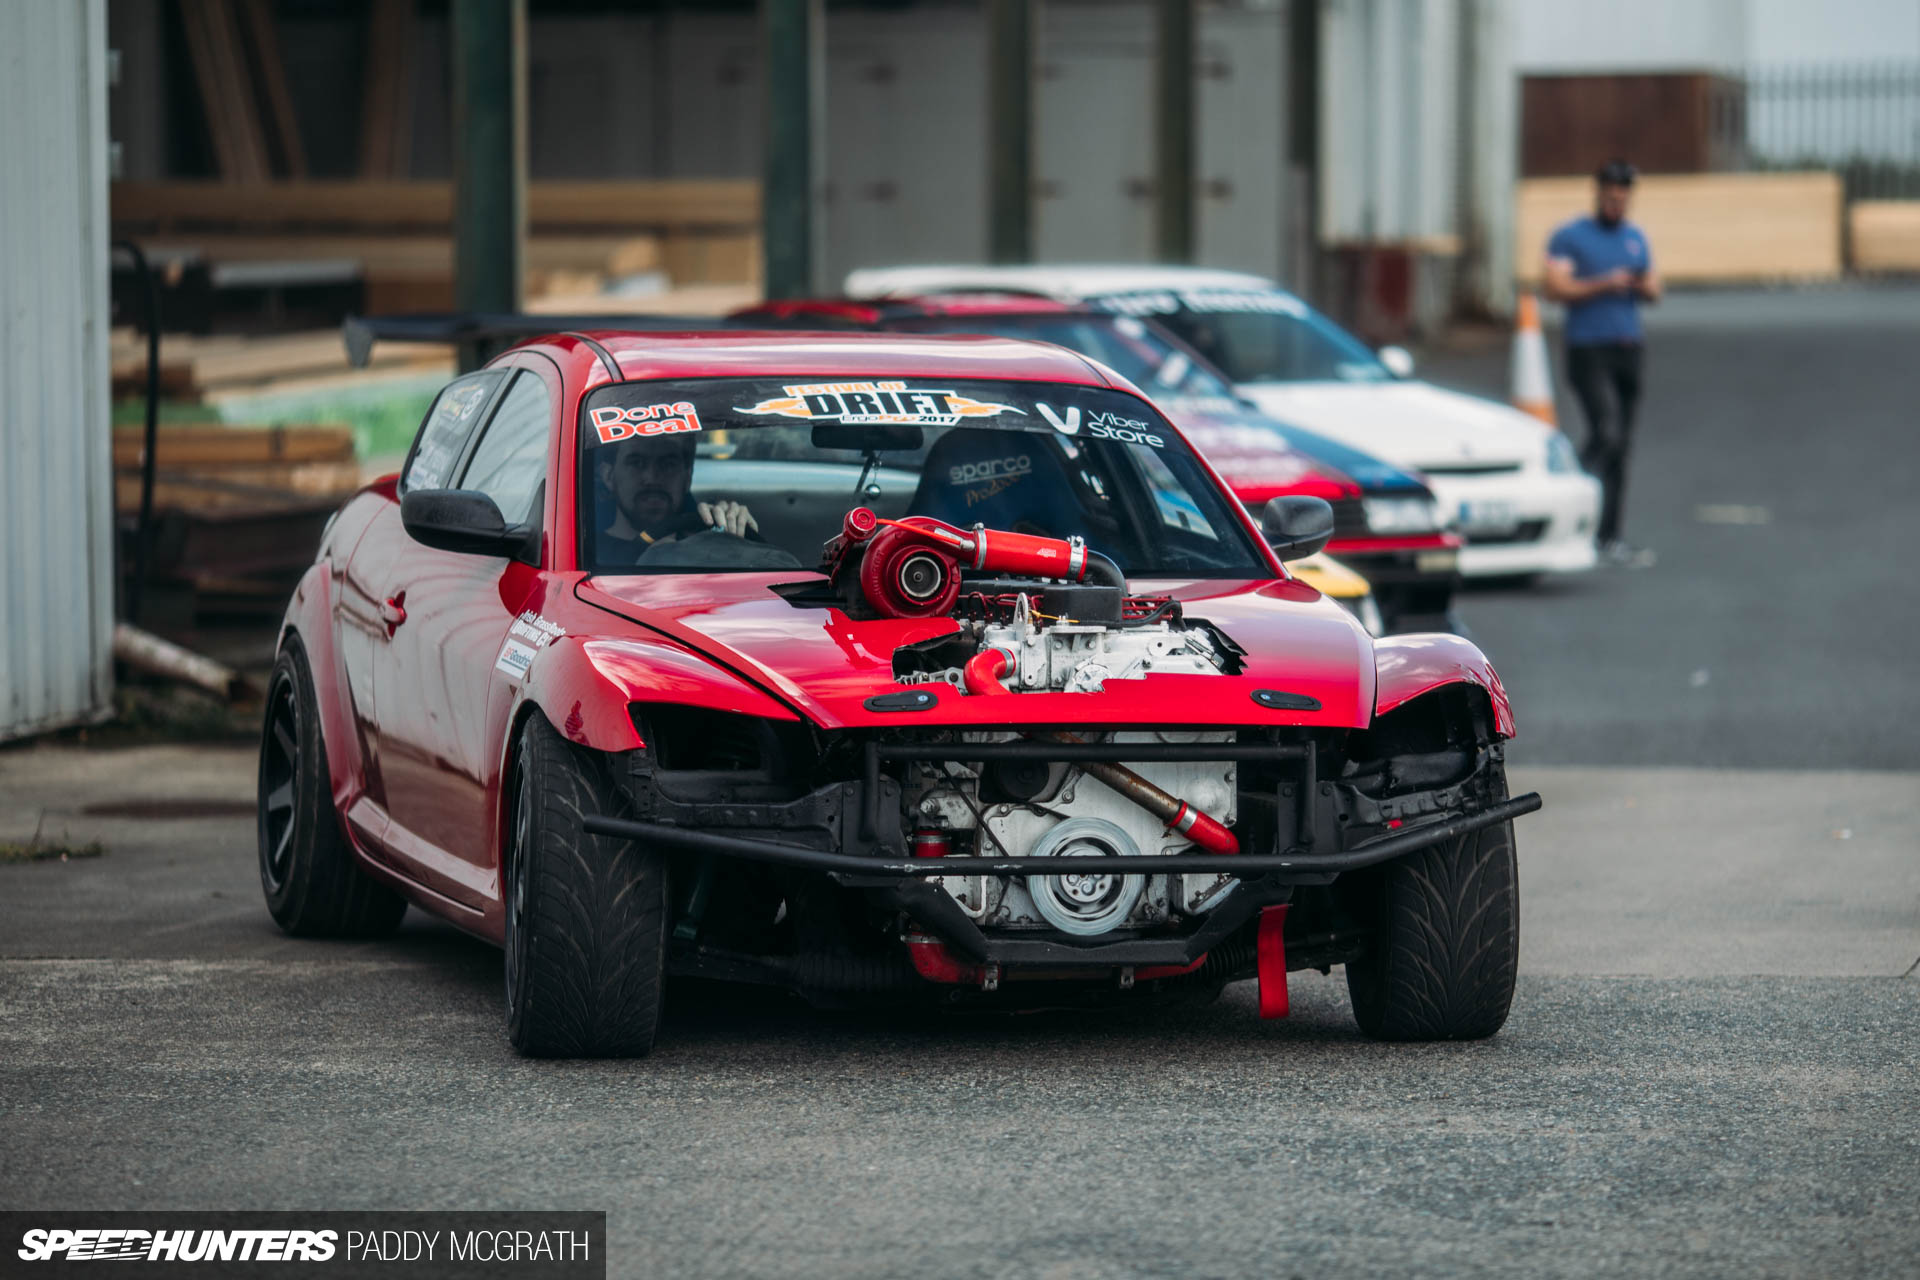 2017-Juicebox-BBQ-Mazda-RX-Hate-Speedhunters-by-Paddy-McGrath-4